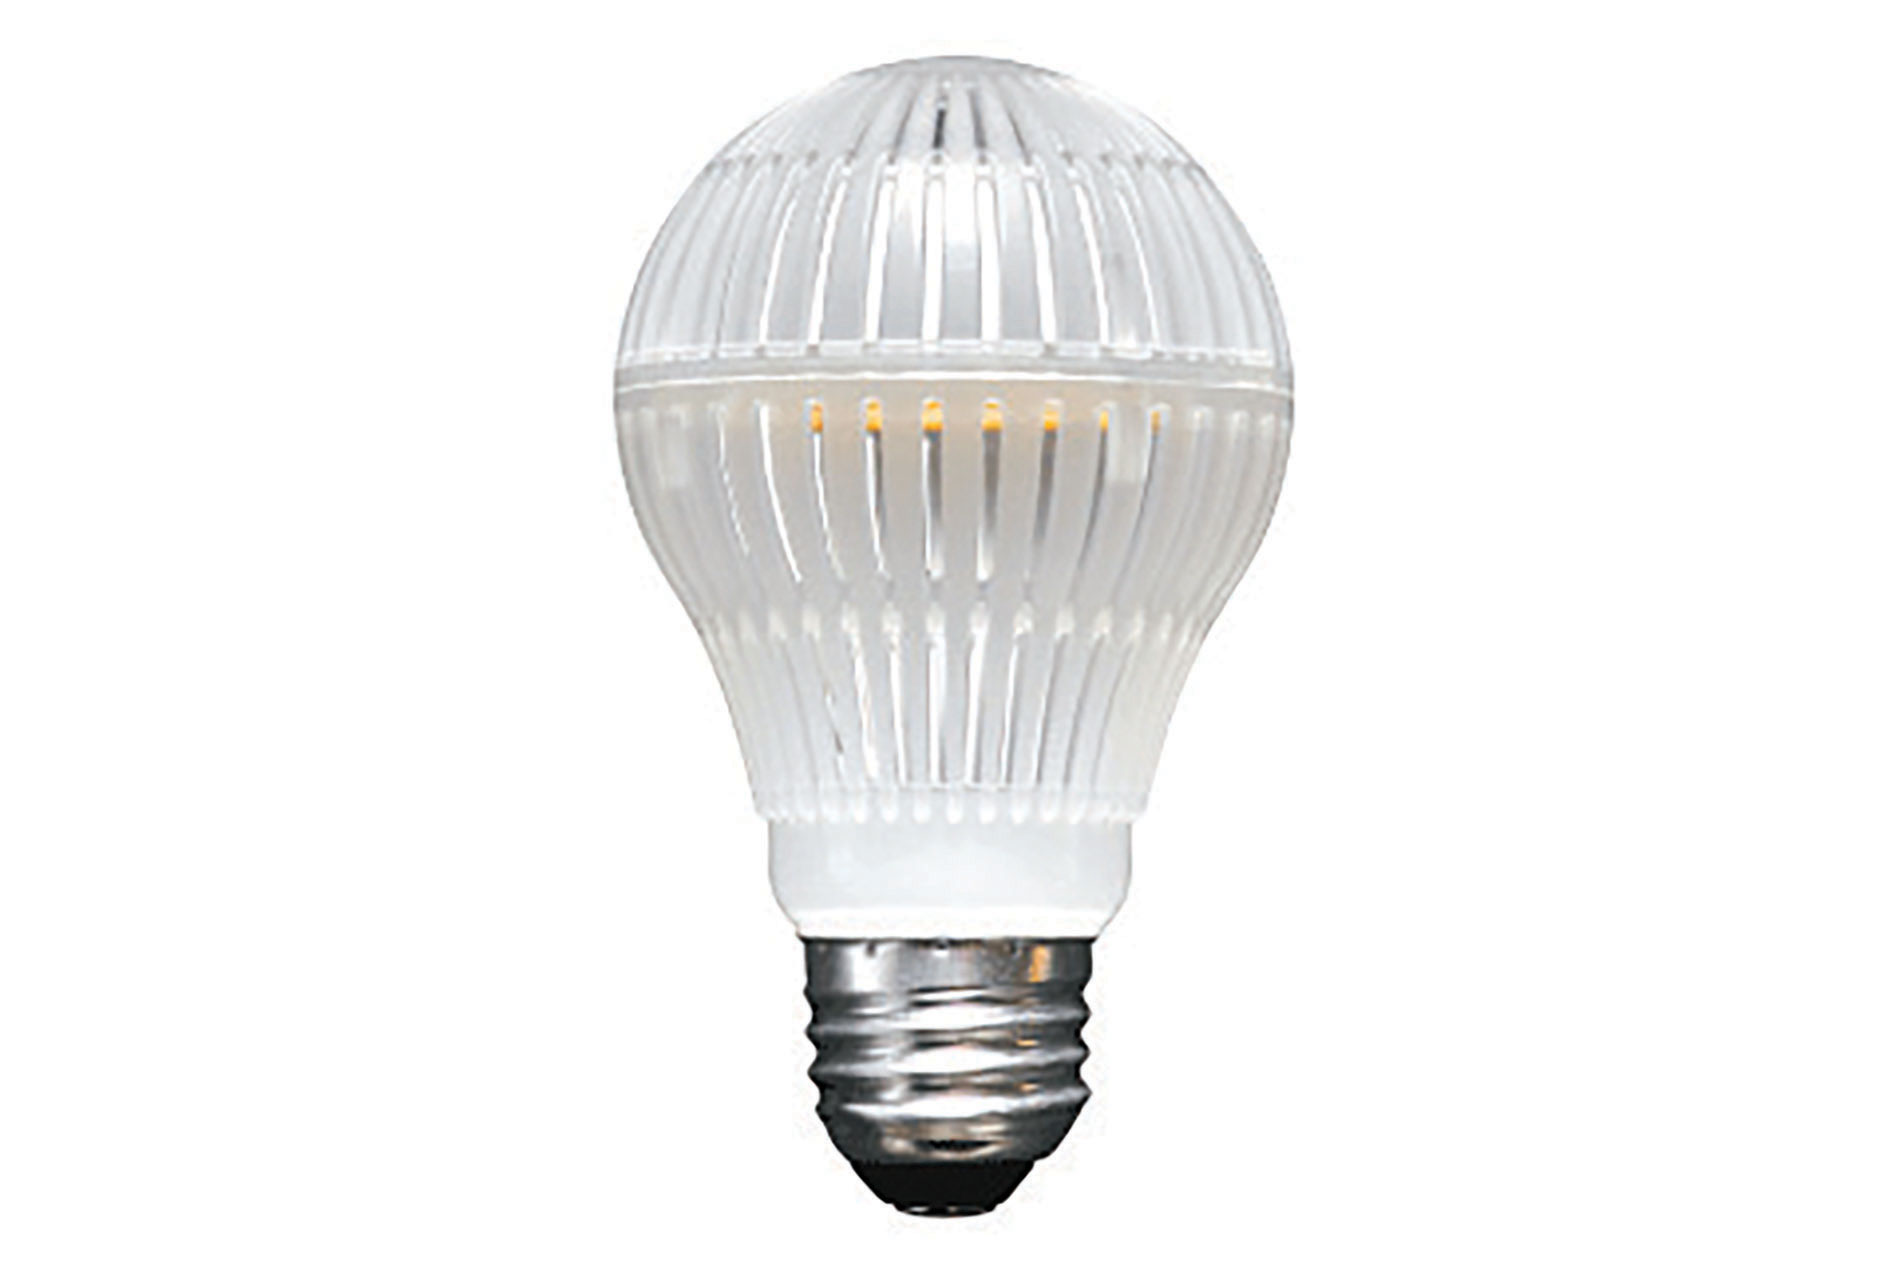 Global Value Lighting's Durabulb Lamp